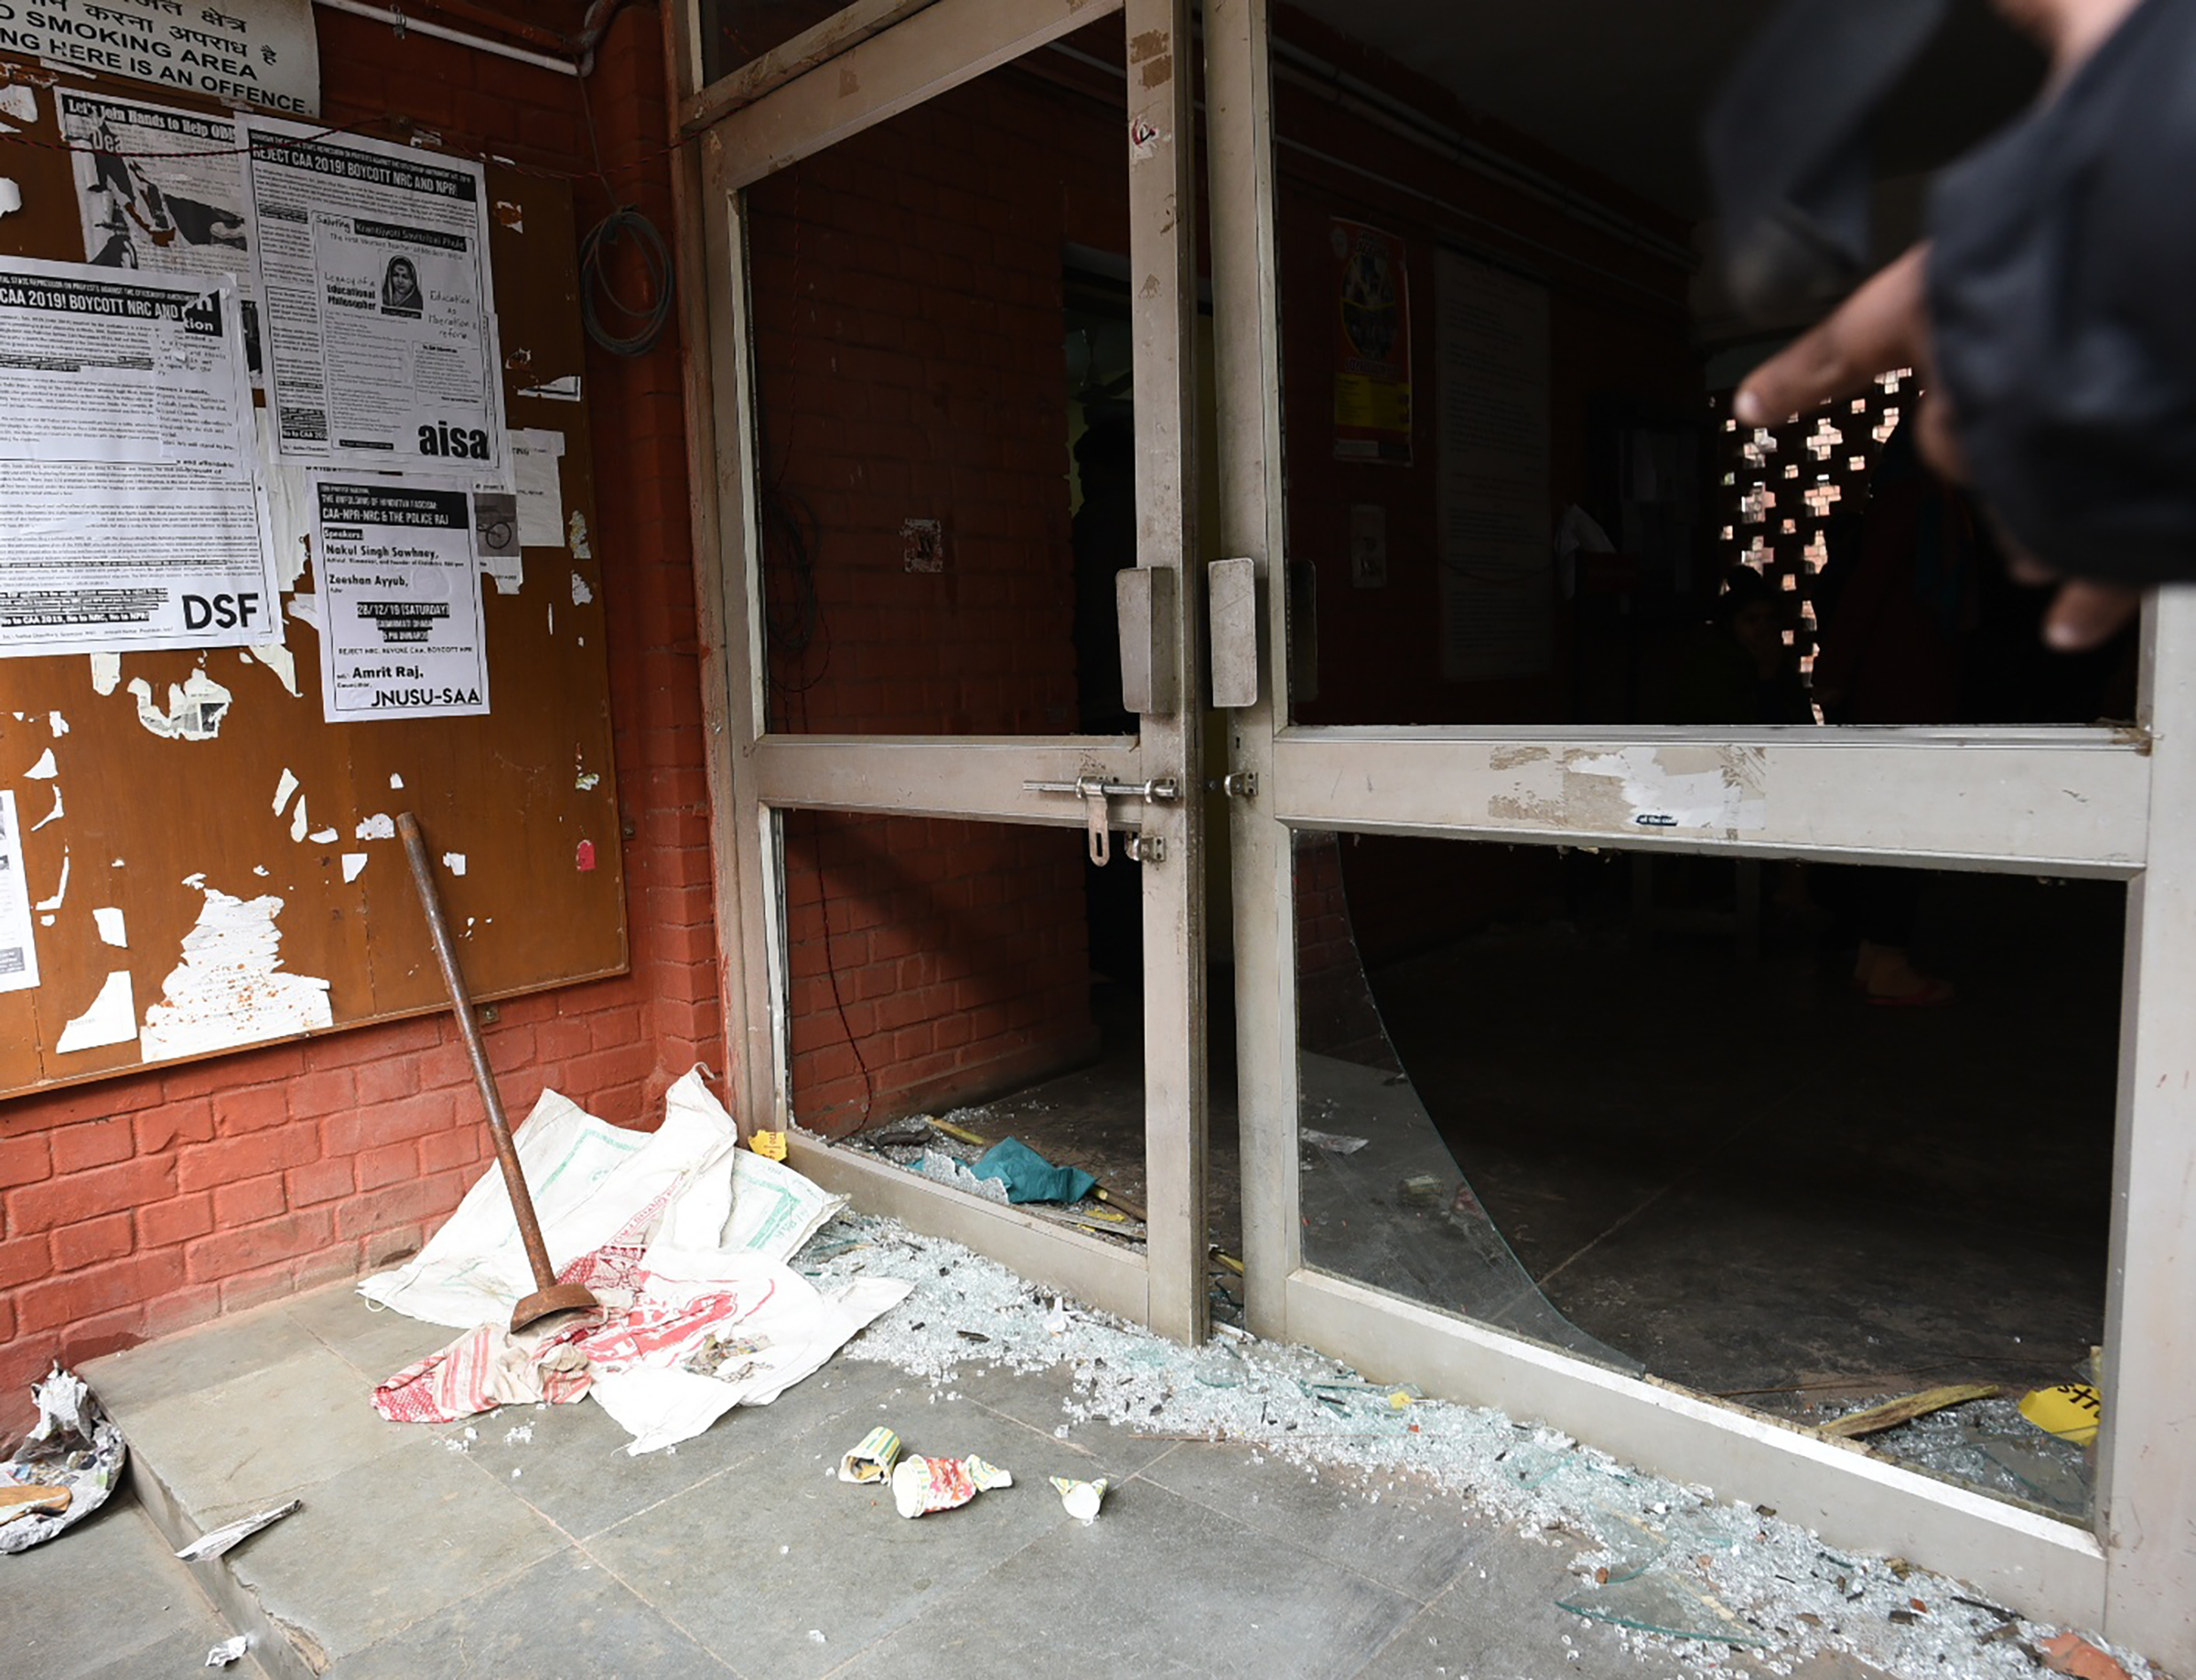 Shards of glass are seen in the premises of Sabarmati Hostel, at Jawaharlal Nehru University (JNU), on Jan. 6, 2020 in New Delhi, India.